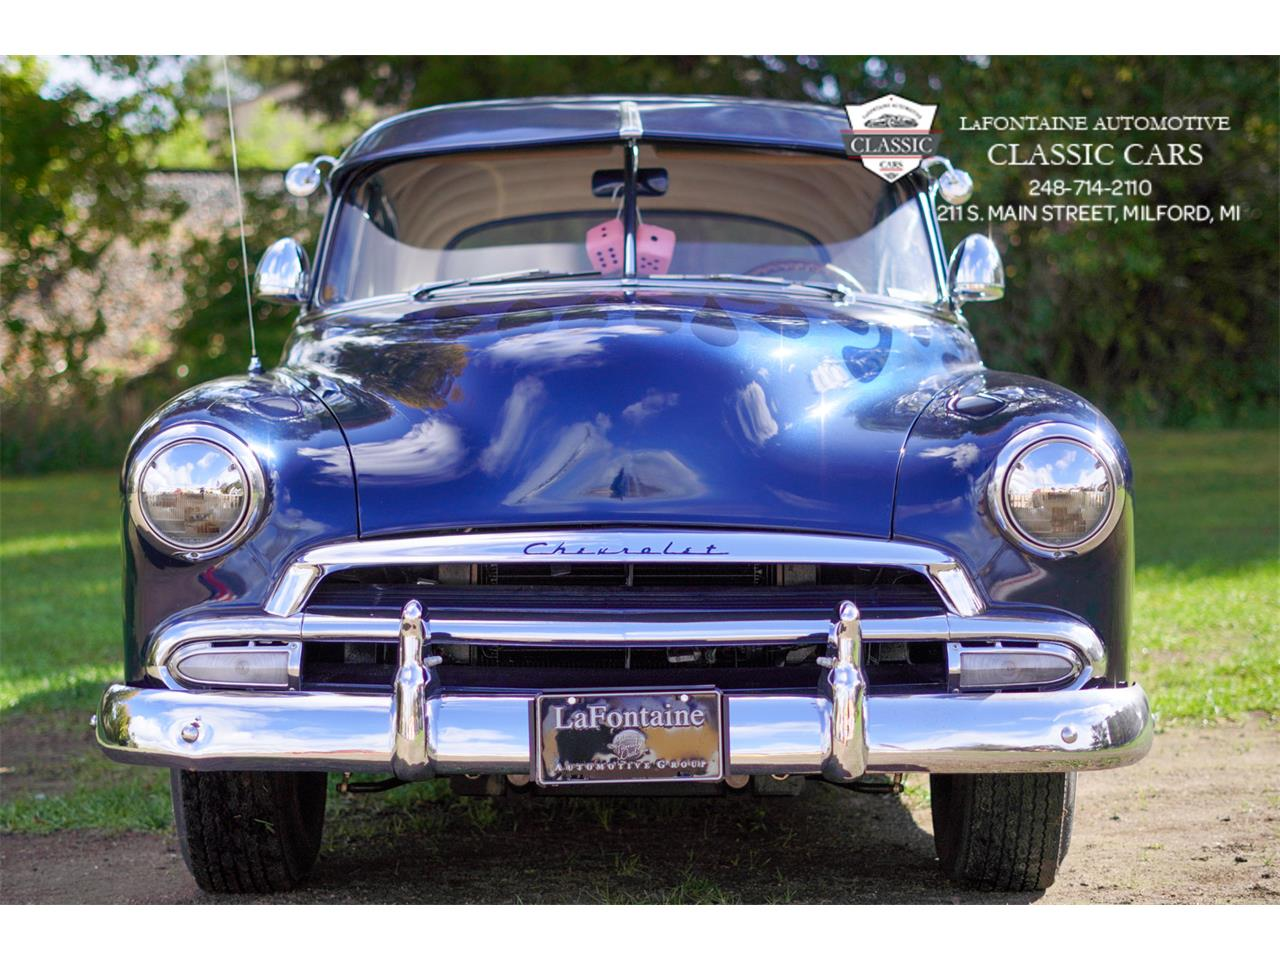 1952 Chevrolet Coupe (CC-1365229) for sale in Milford, Michigan